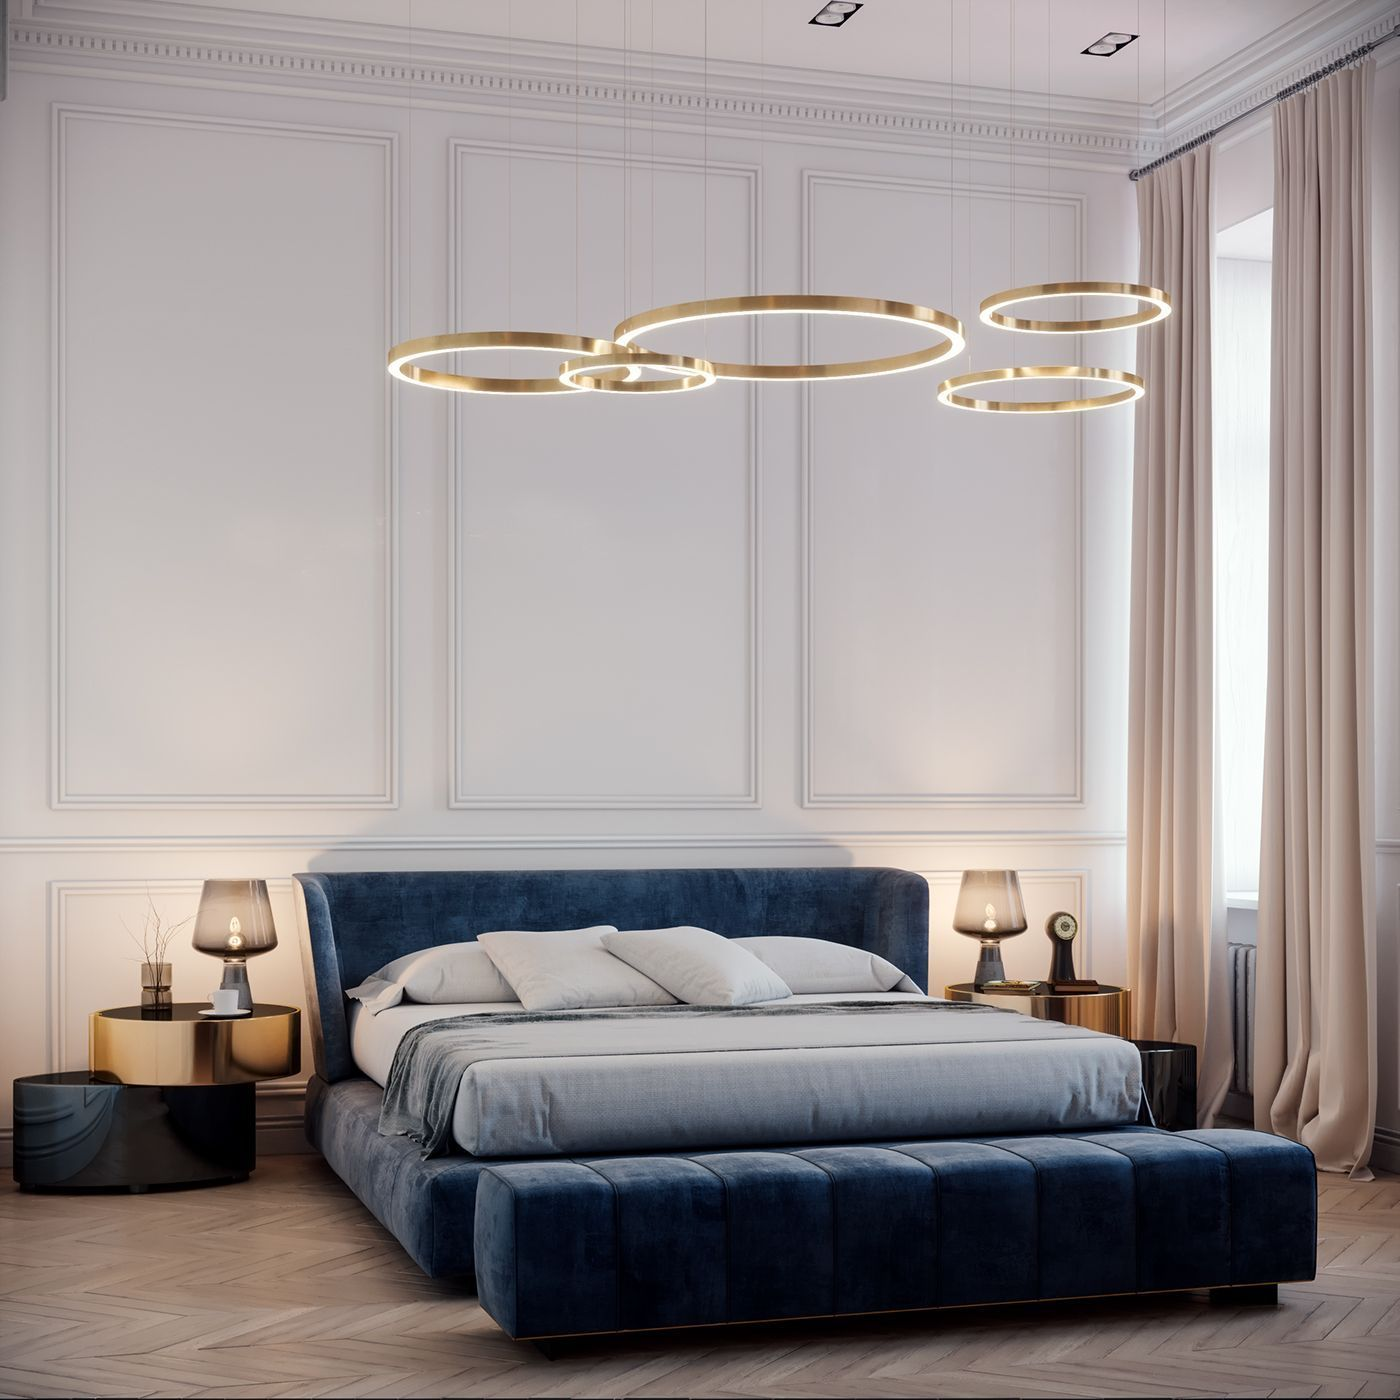 unique bedroom decorating ideas | extremely unique bedroom design | unique bedro…